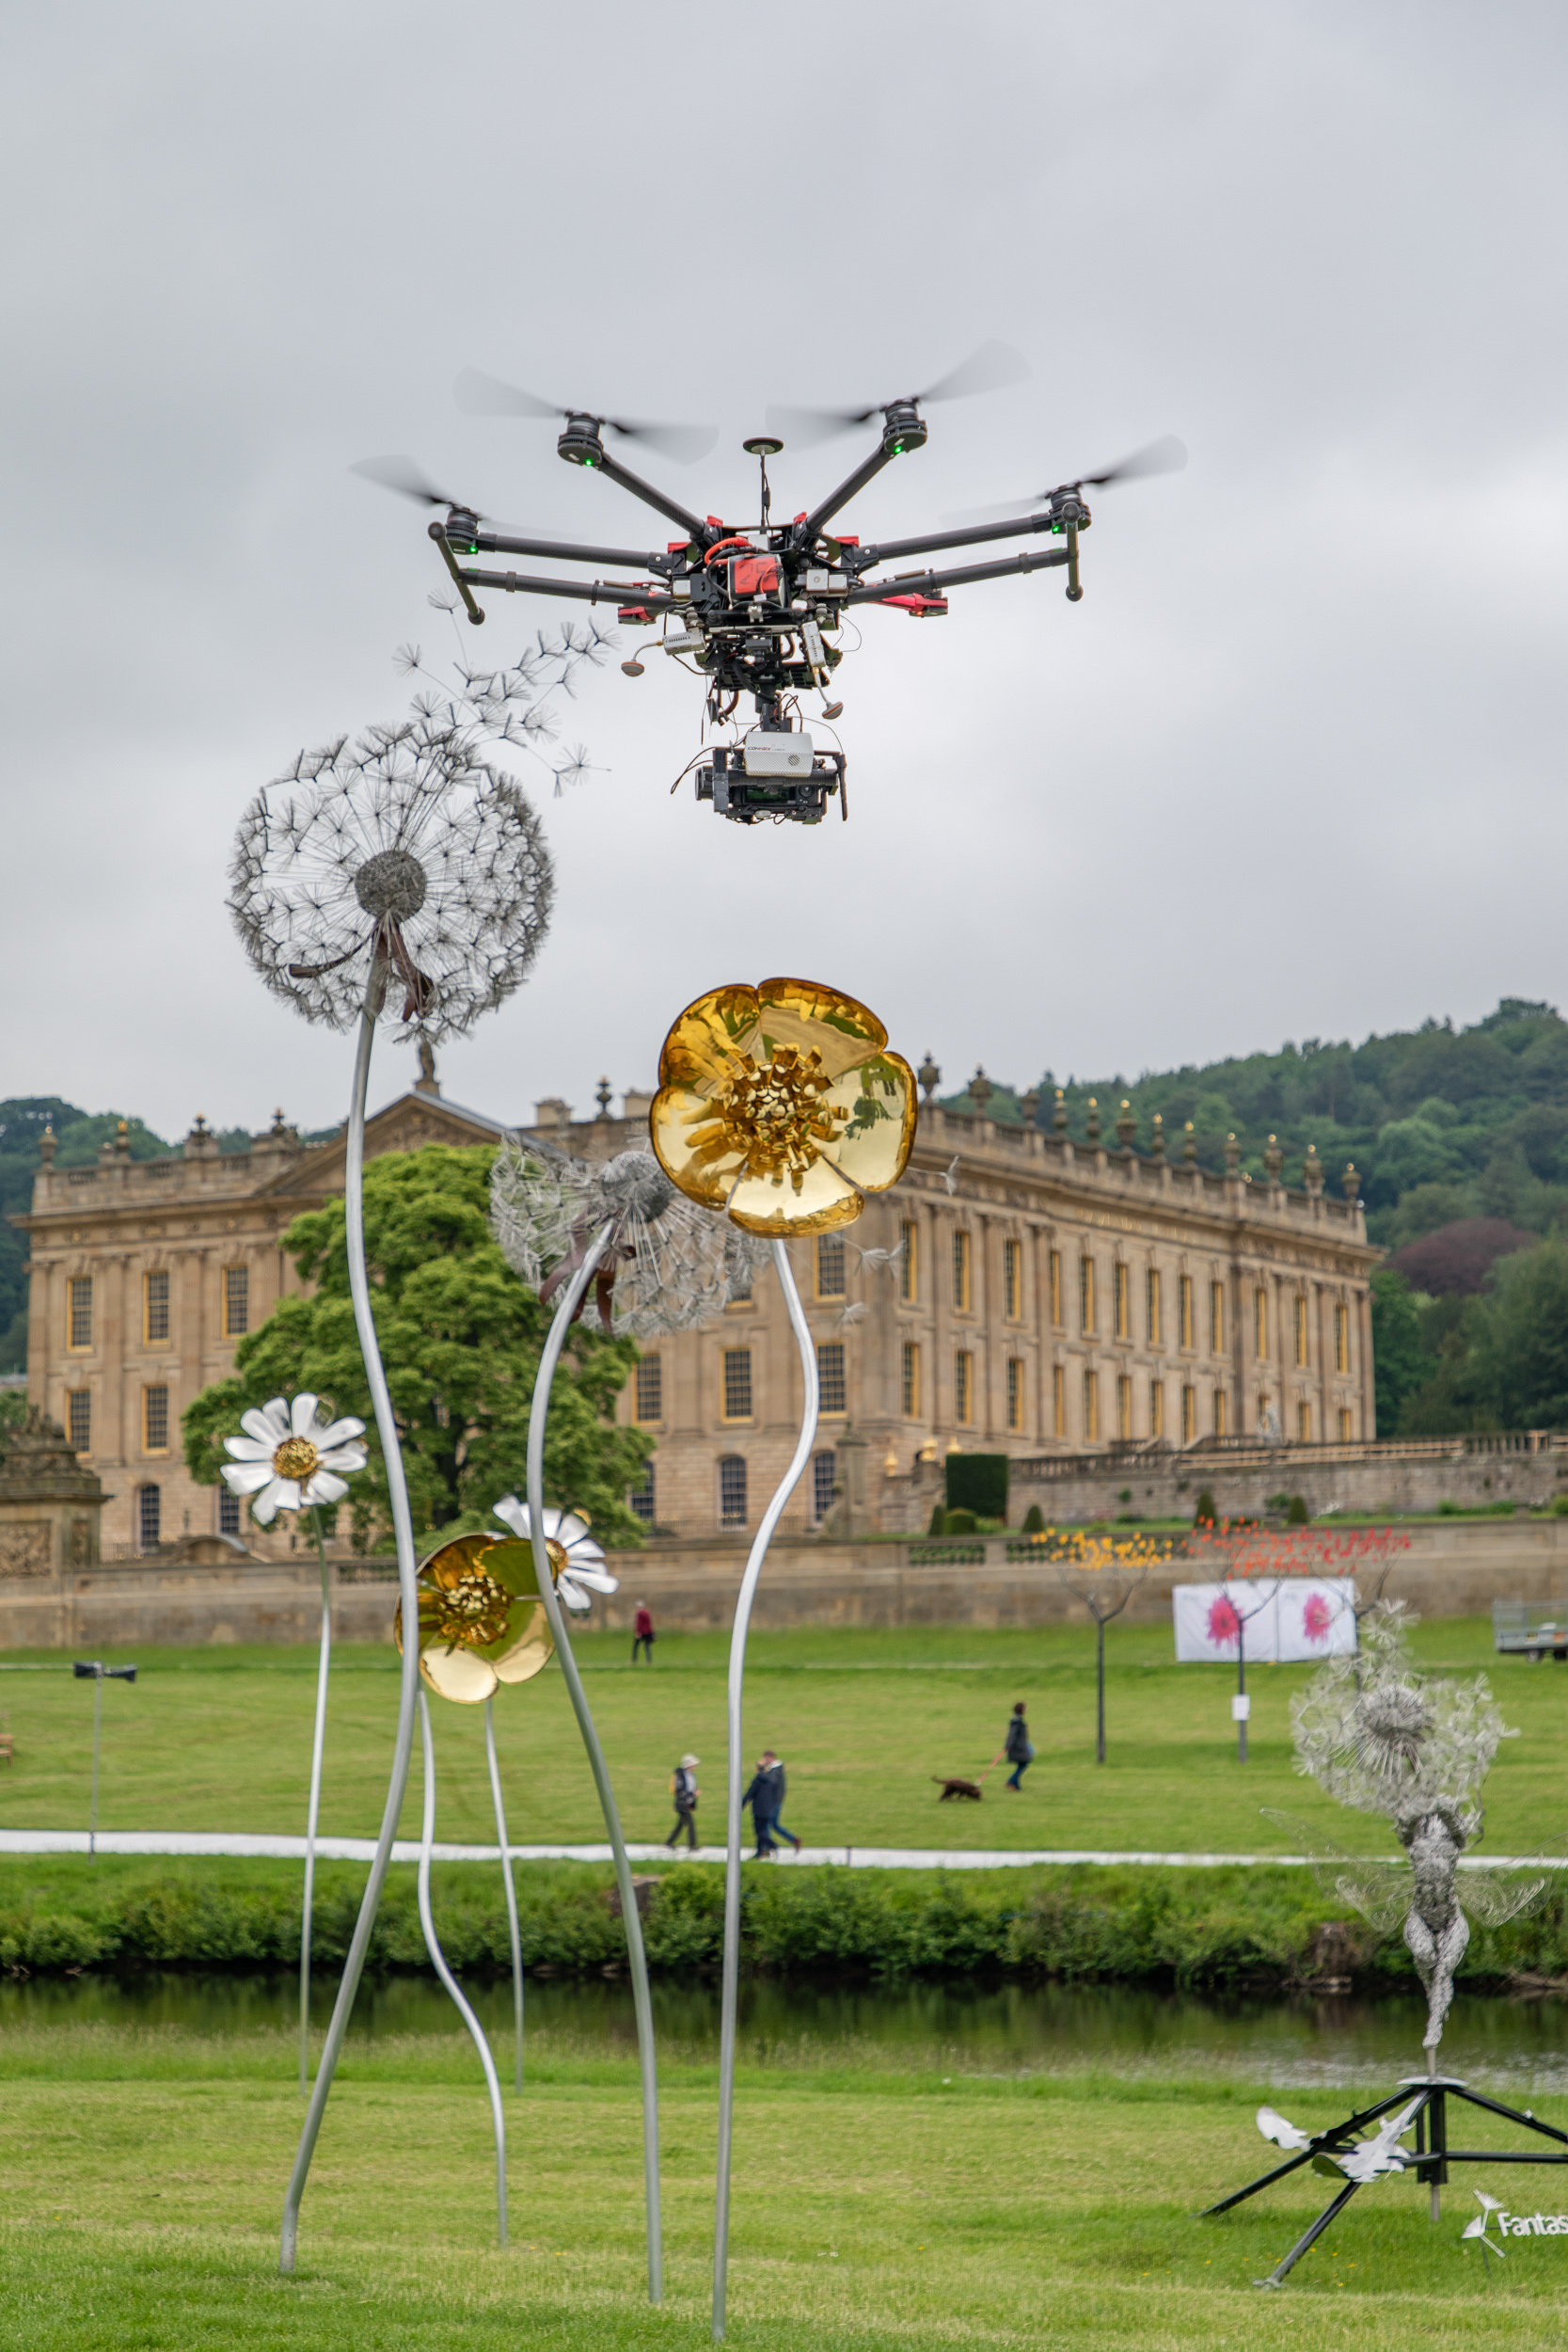 A Drone being used for filming at this years RHS Chatsworth Flower Show.